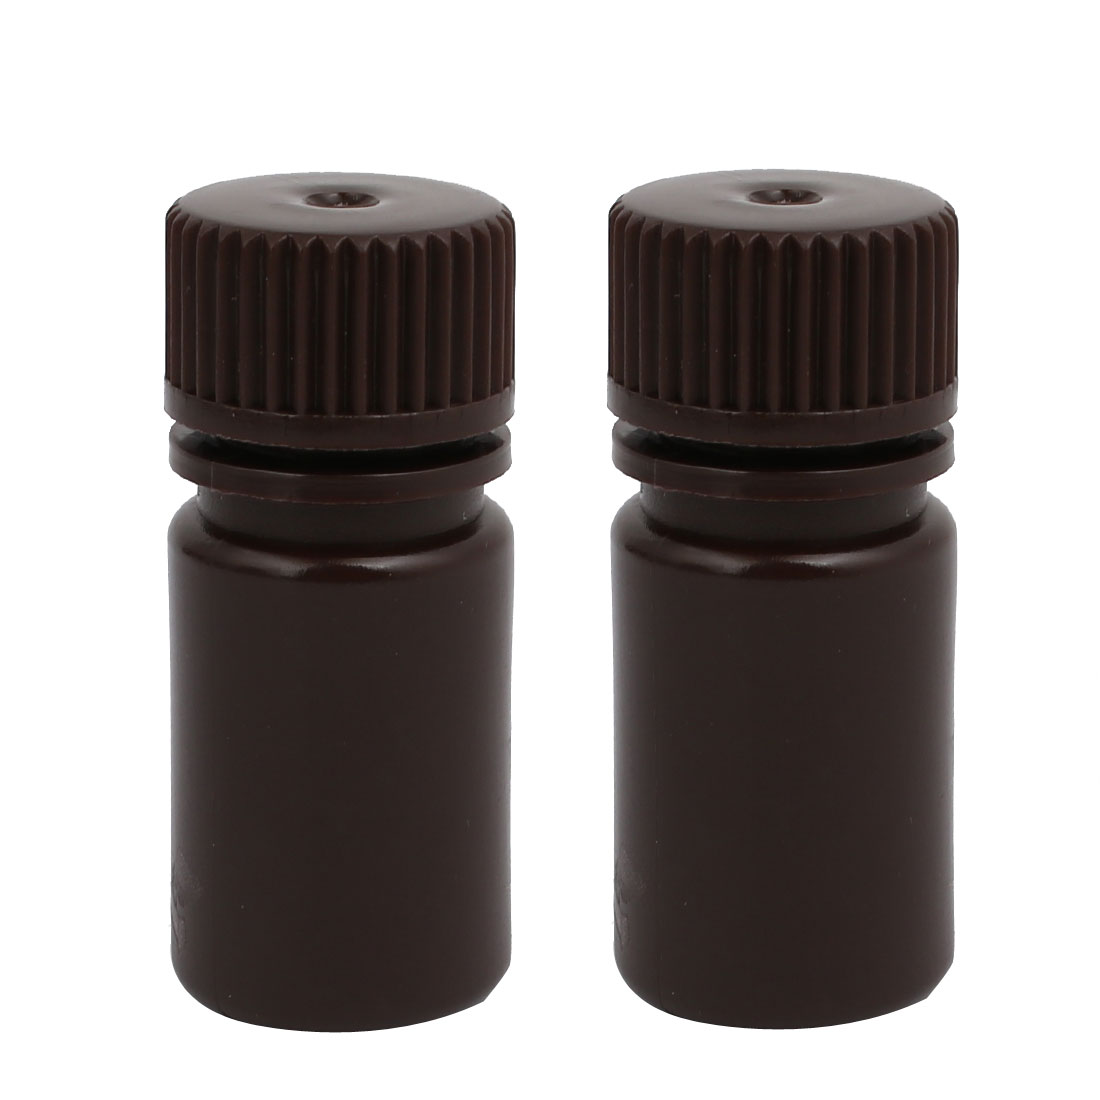 15ml 13mm Diameter HDPE Plastic Round Wide Mouth Laboratory Bottle Brown 2pcs